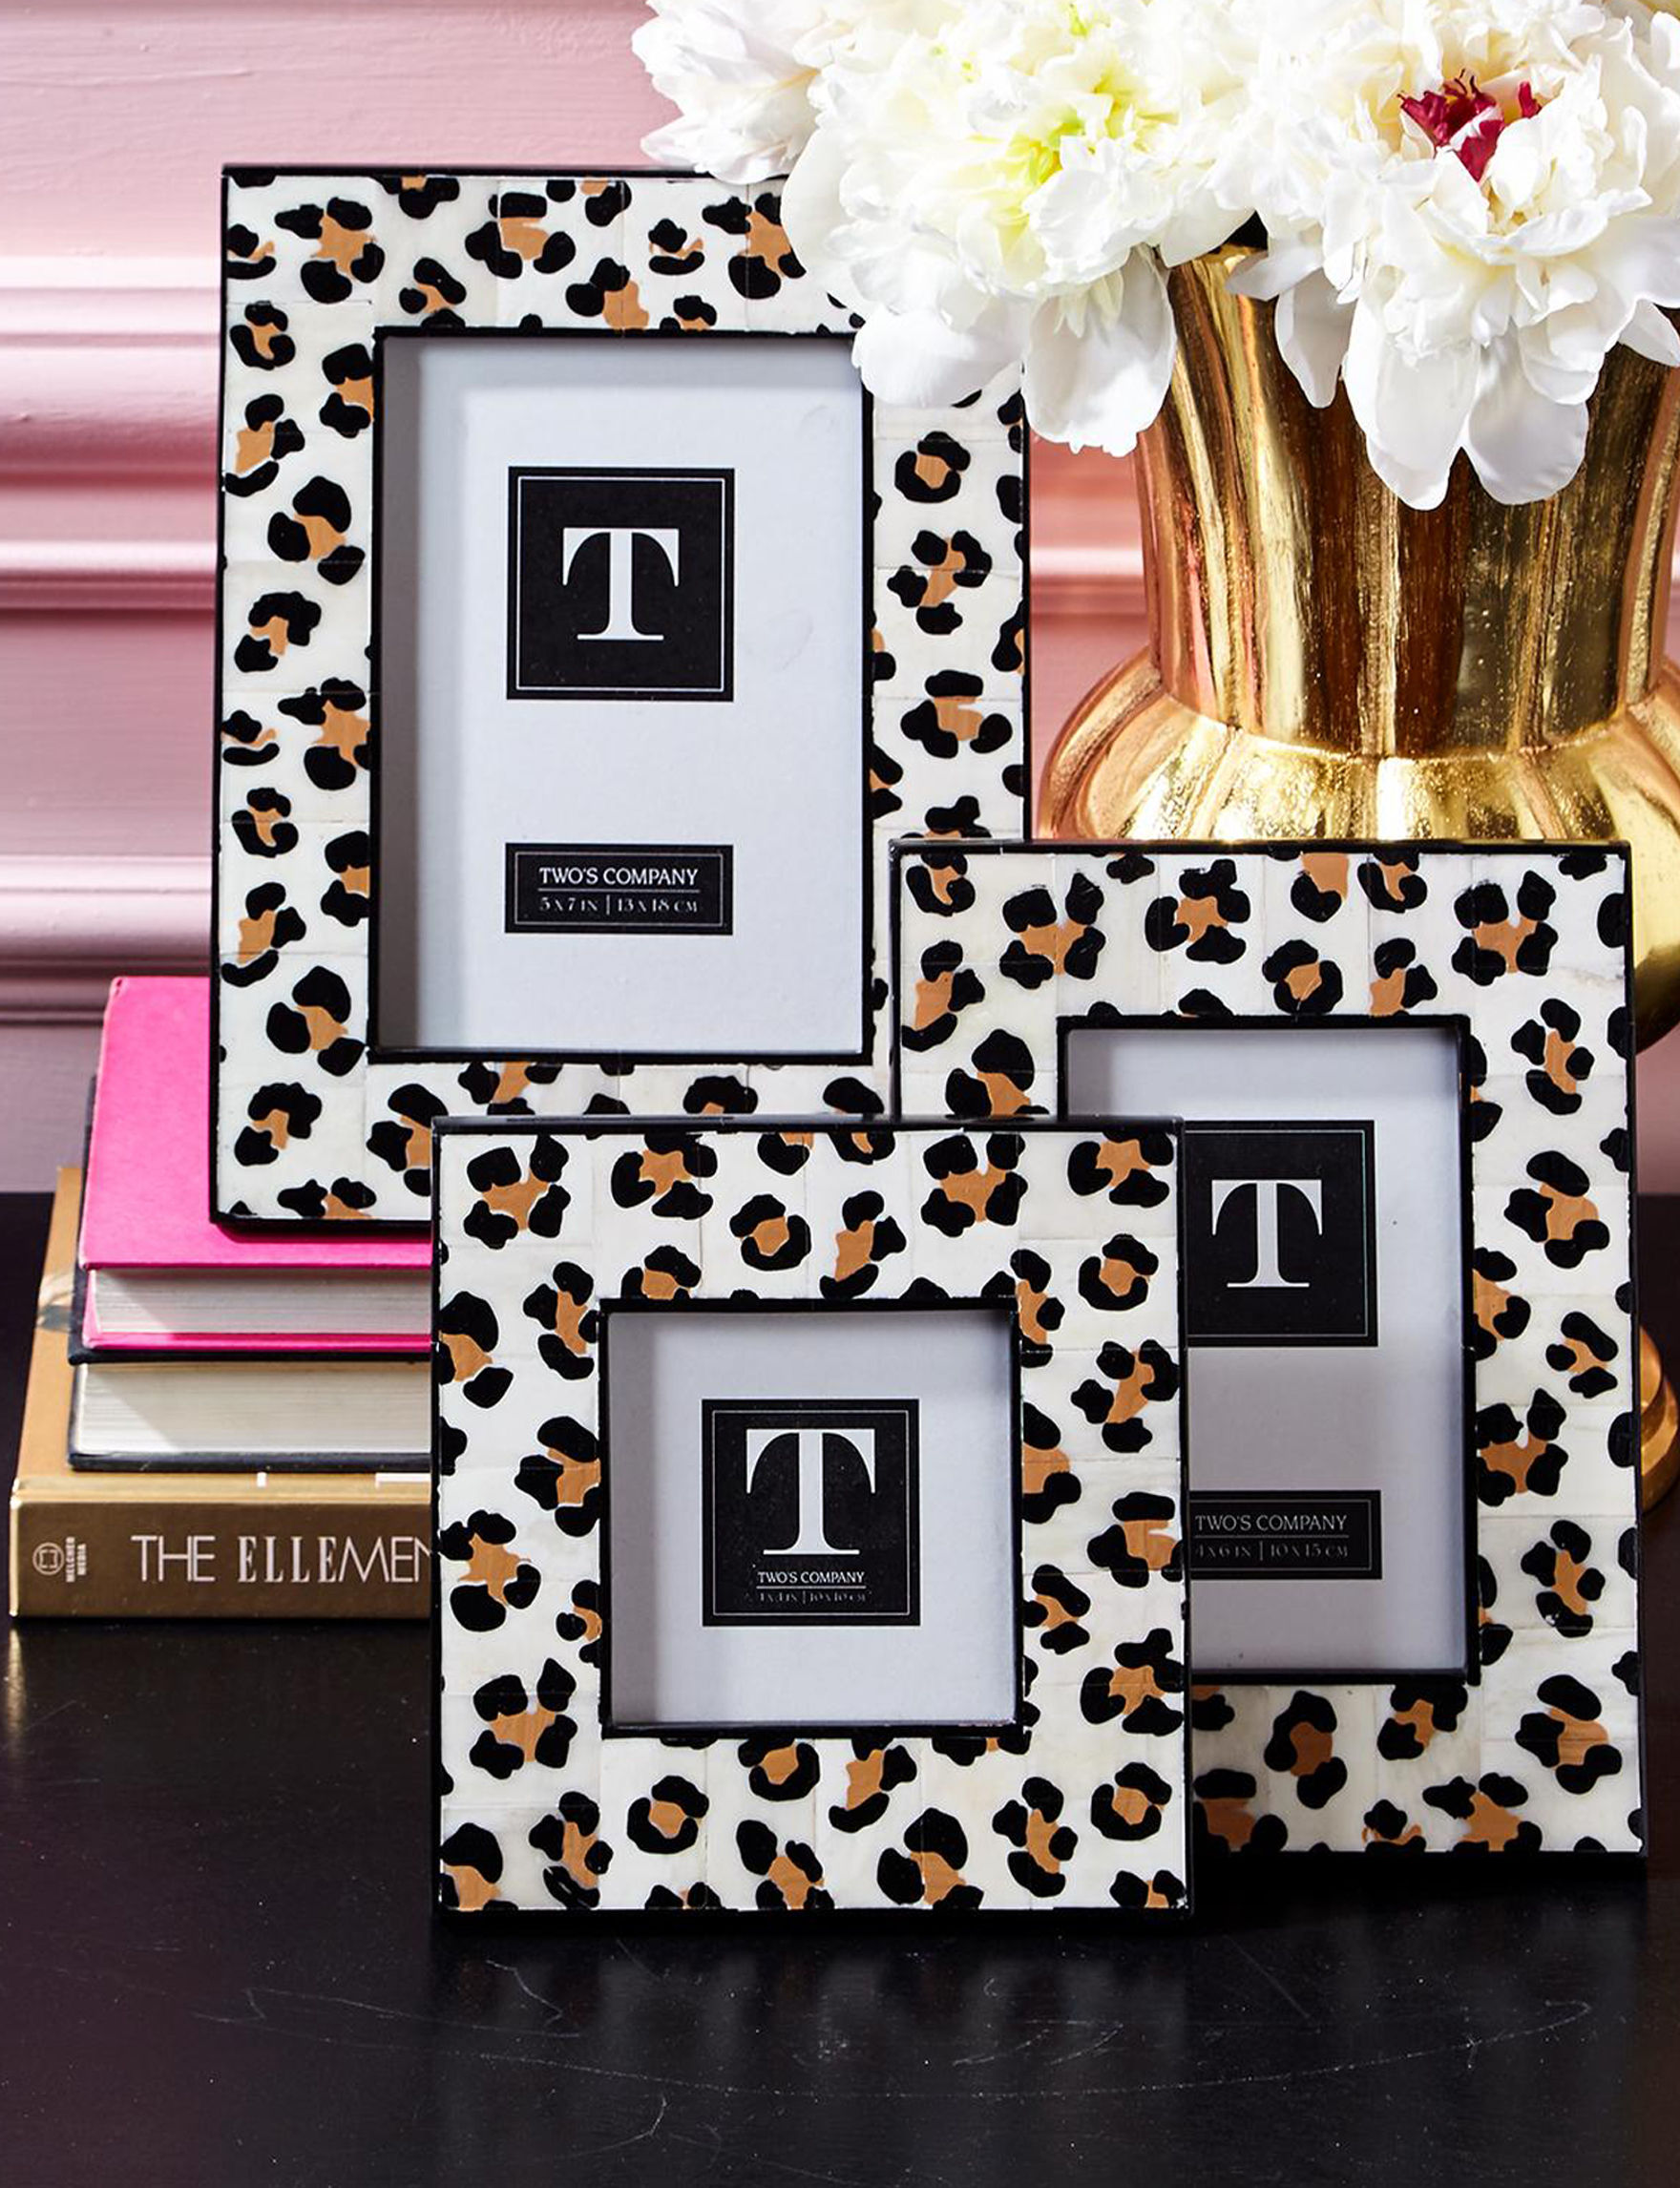 Two's Company Leopard Frames & Shadow Boxes Home Accents